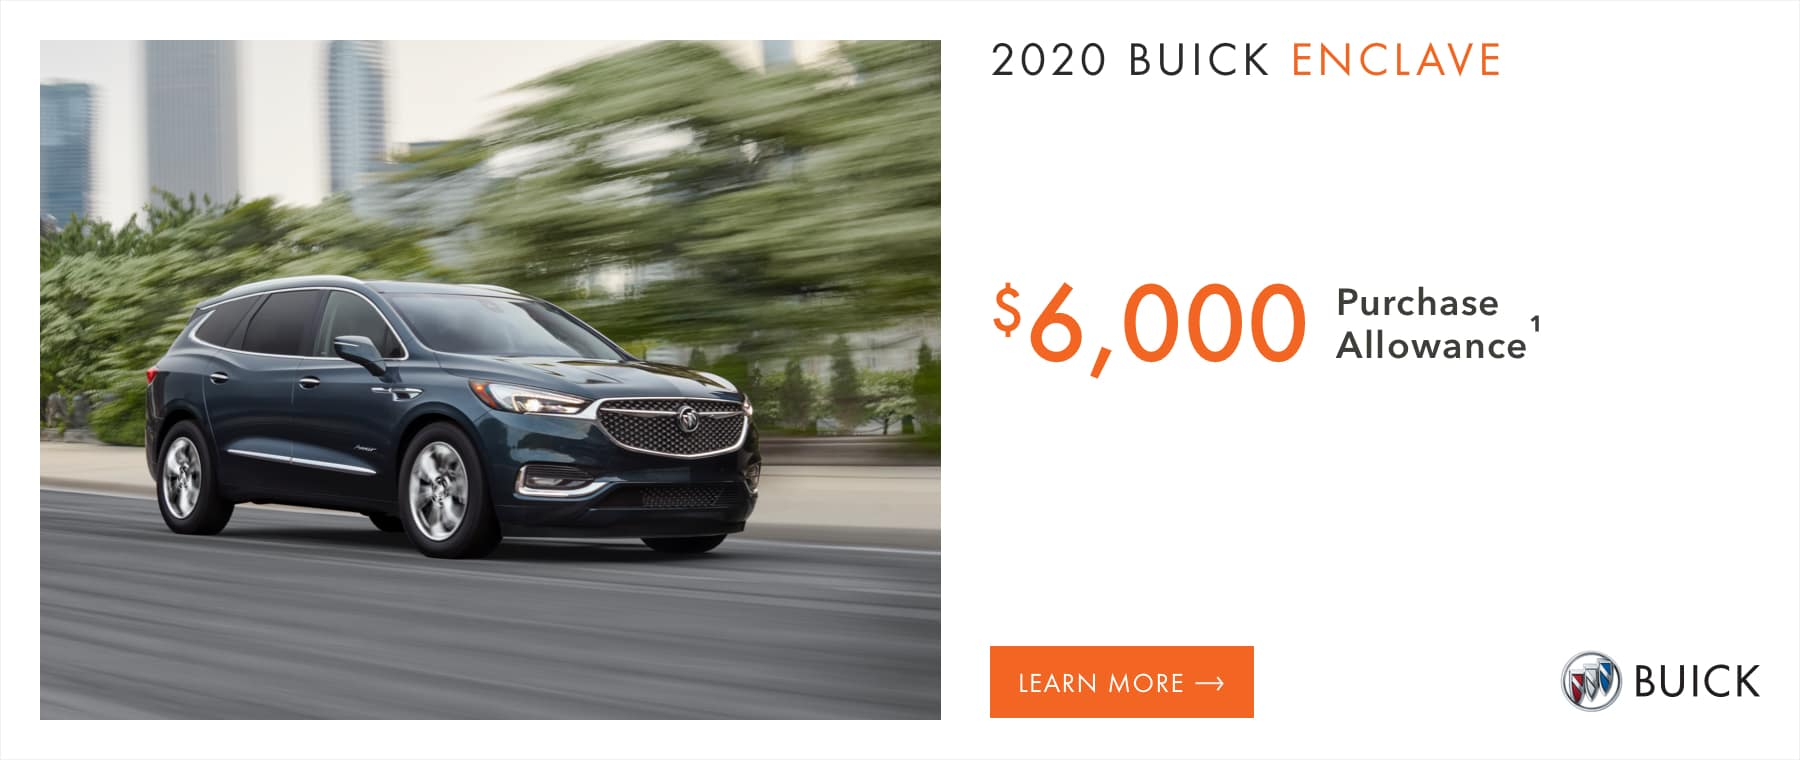 2020 Buick Enclave Models - $6,000 Purchase Allowance